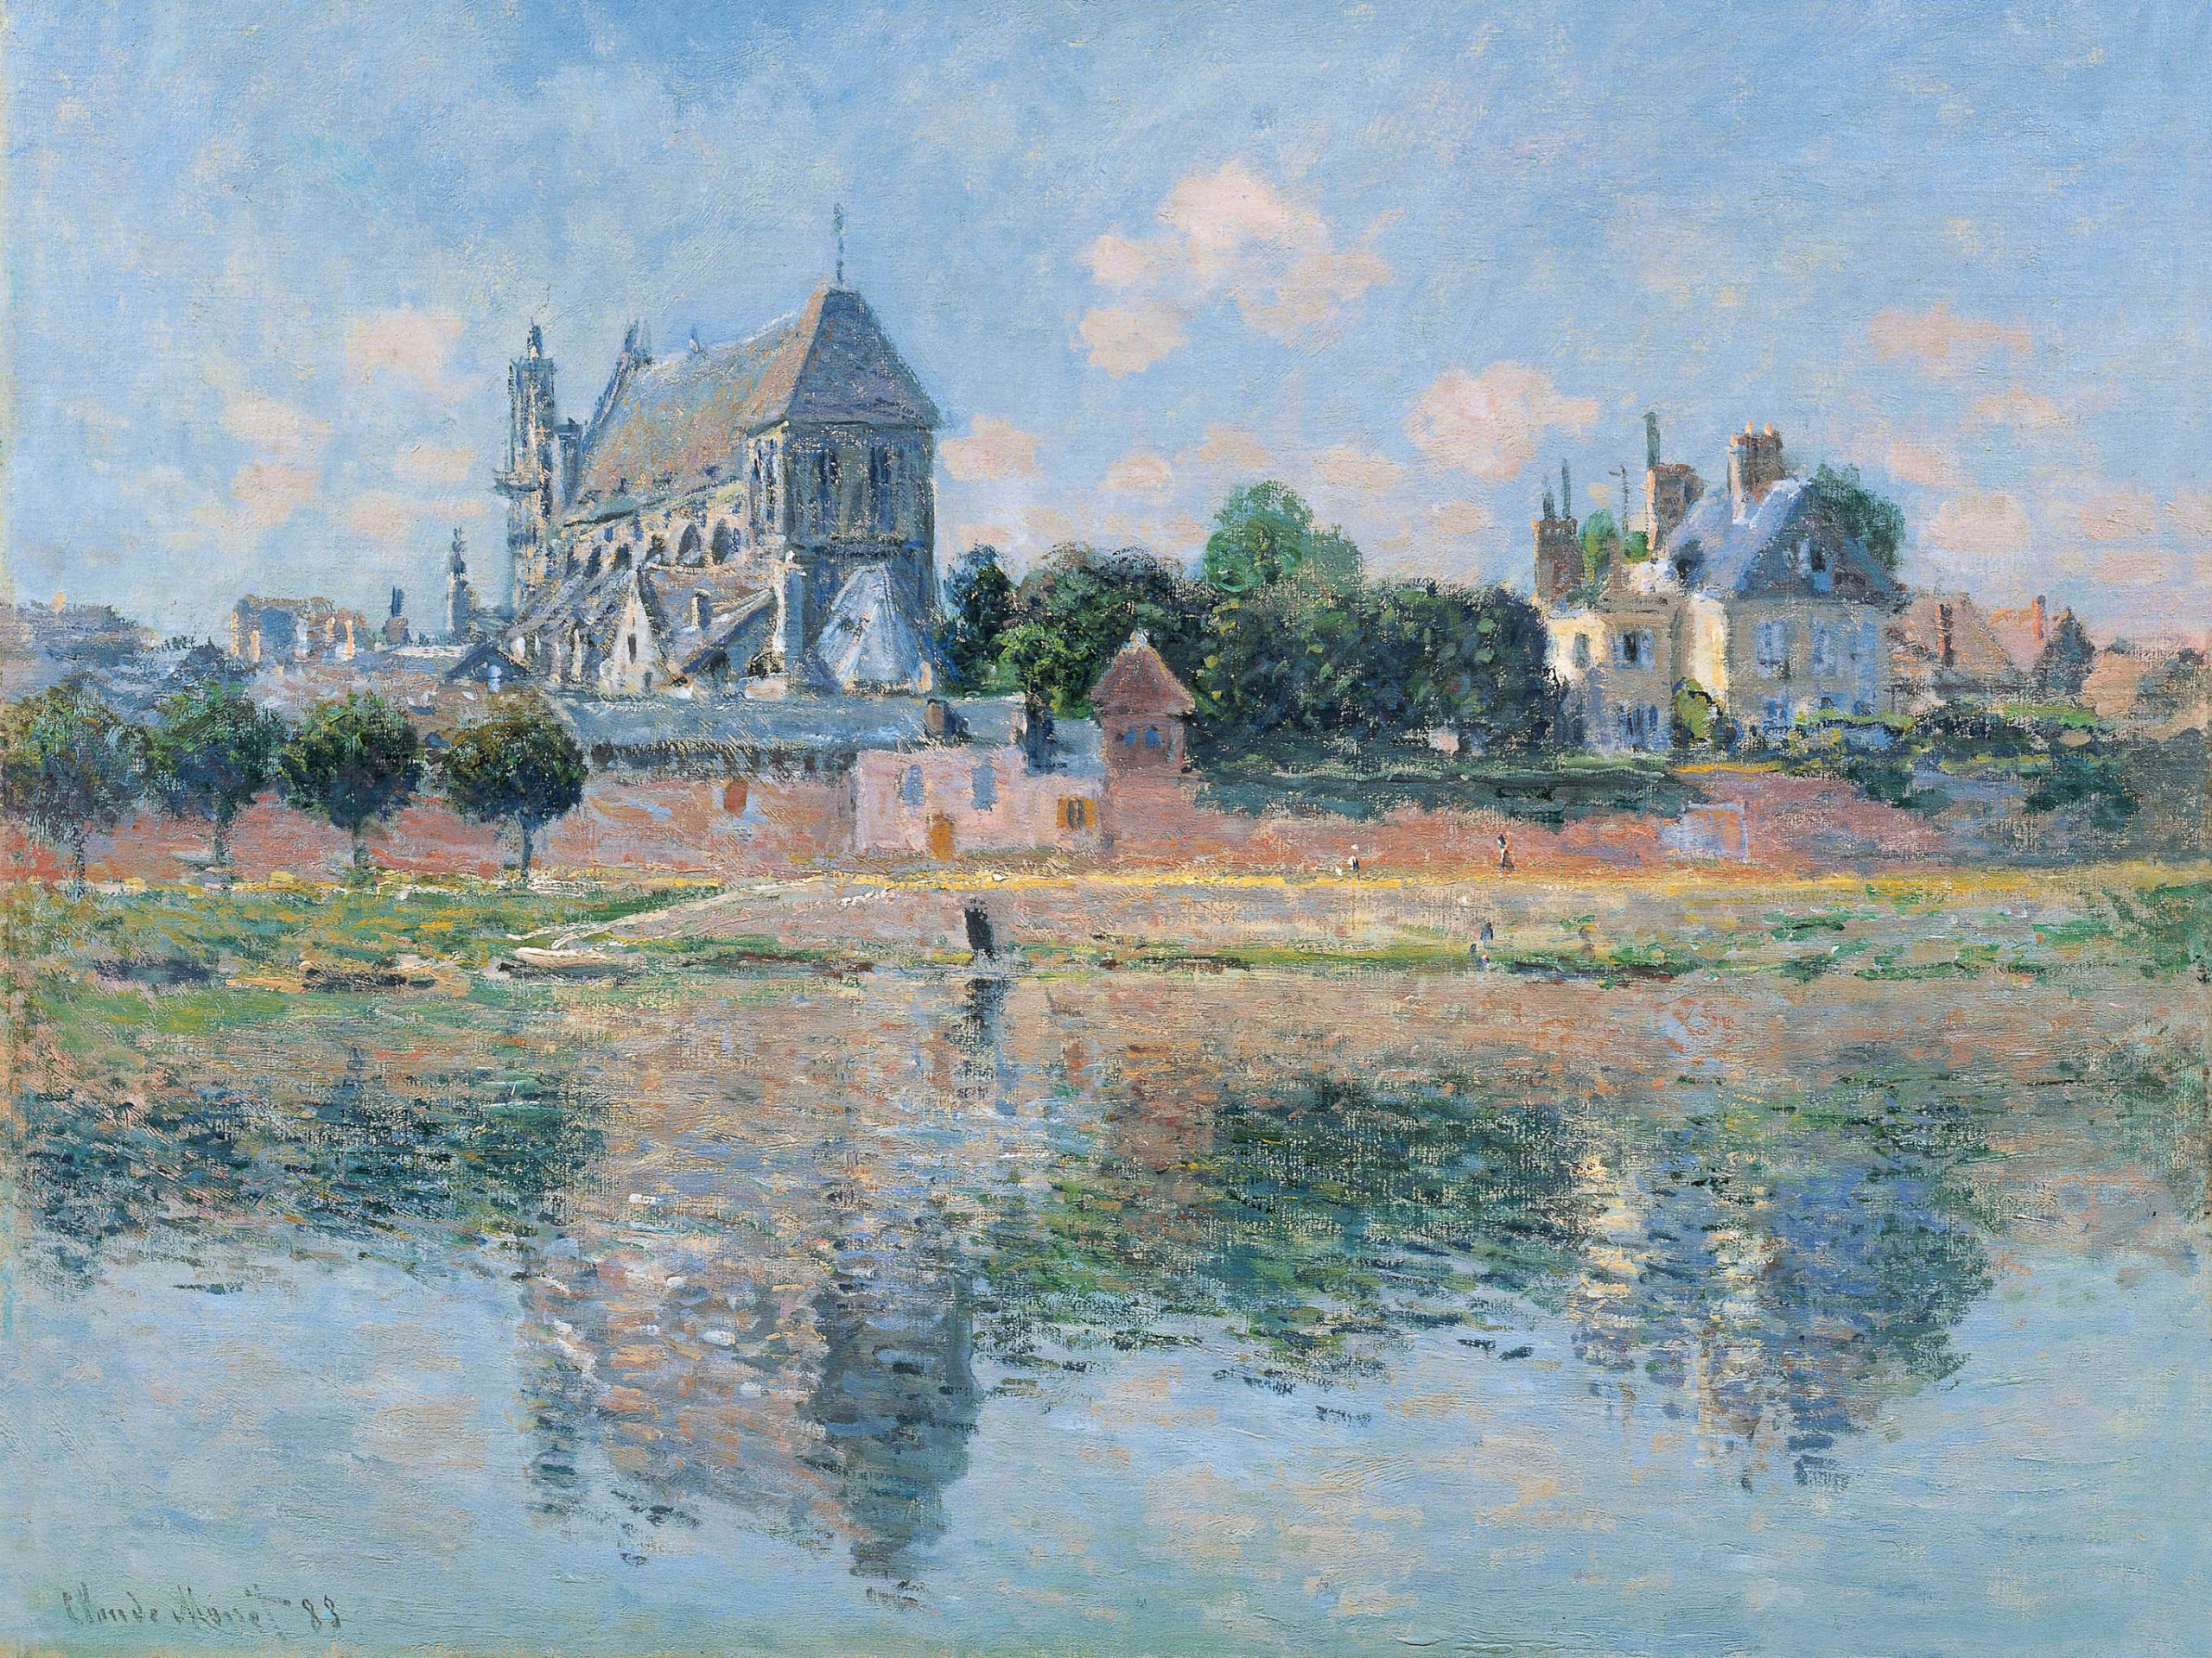 Claude Monet - View of the Church at Vernon 2732x2048